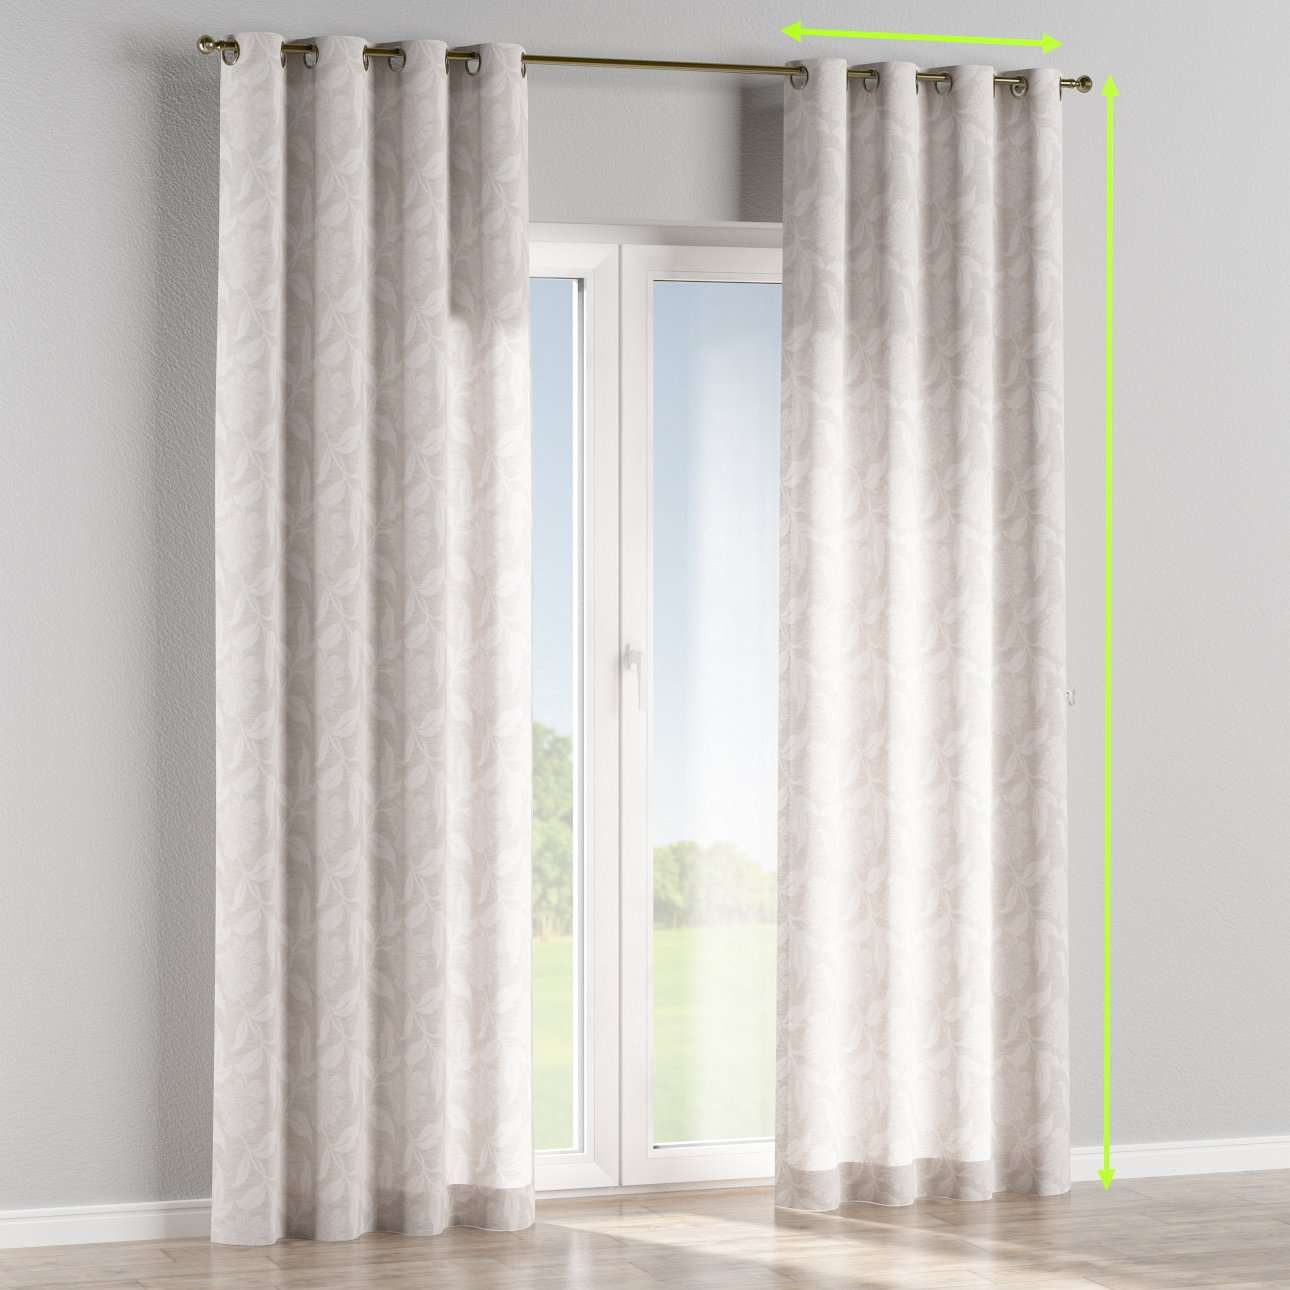 Eyelet curtains in collection Venice, fabric: 140-51